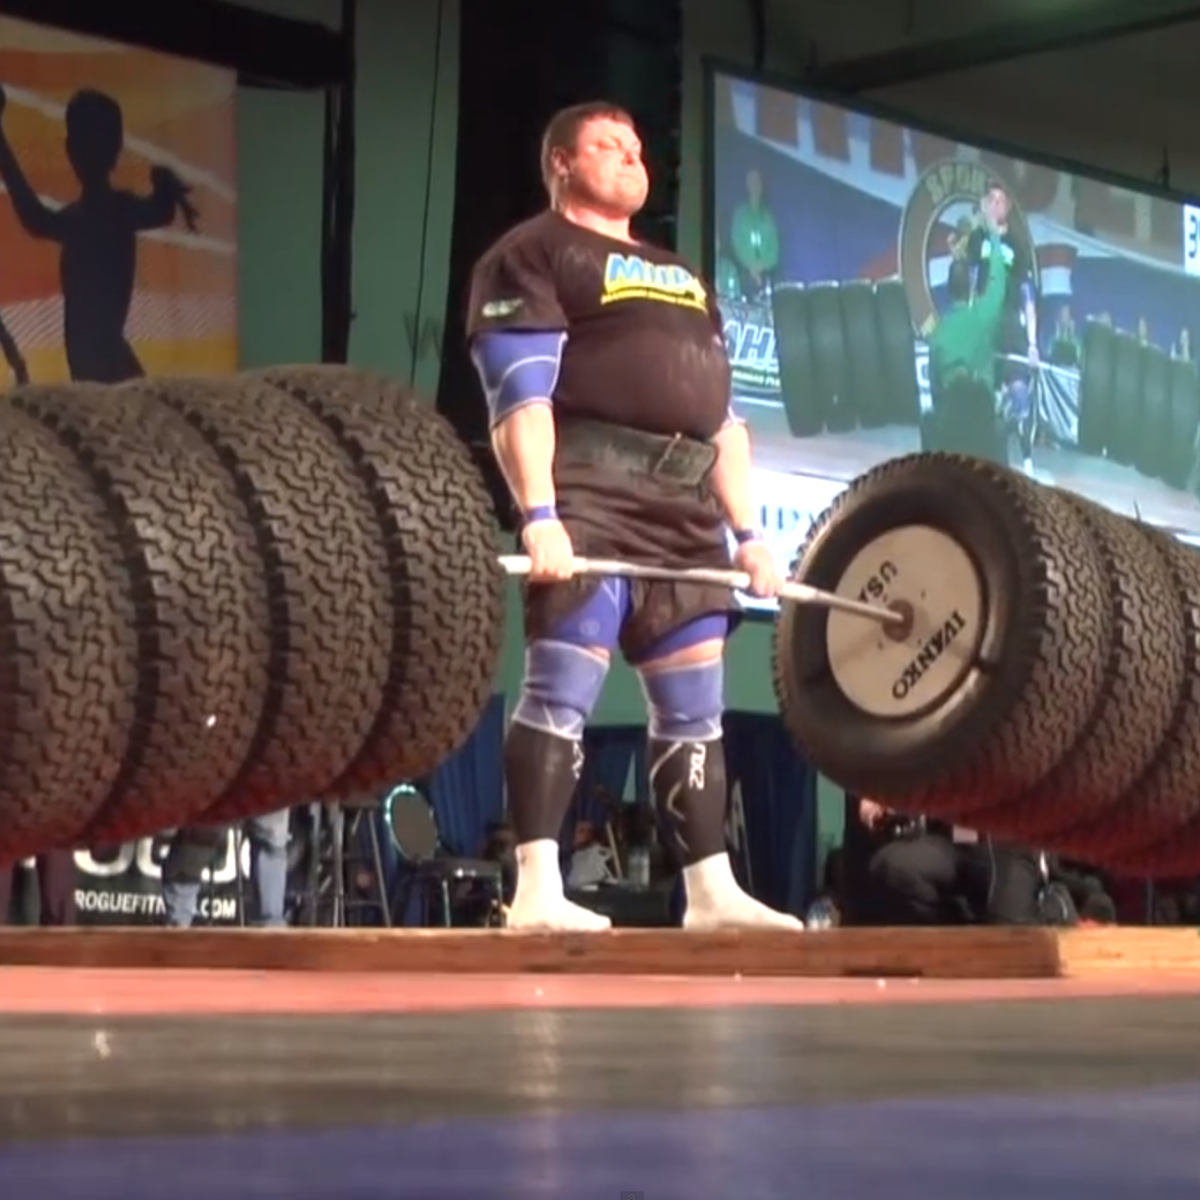 Zydrunas Savickas Breaks The World Record By Deadlifting